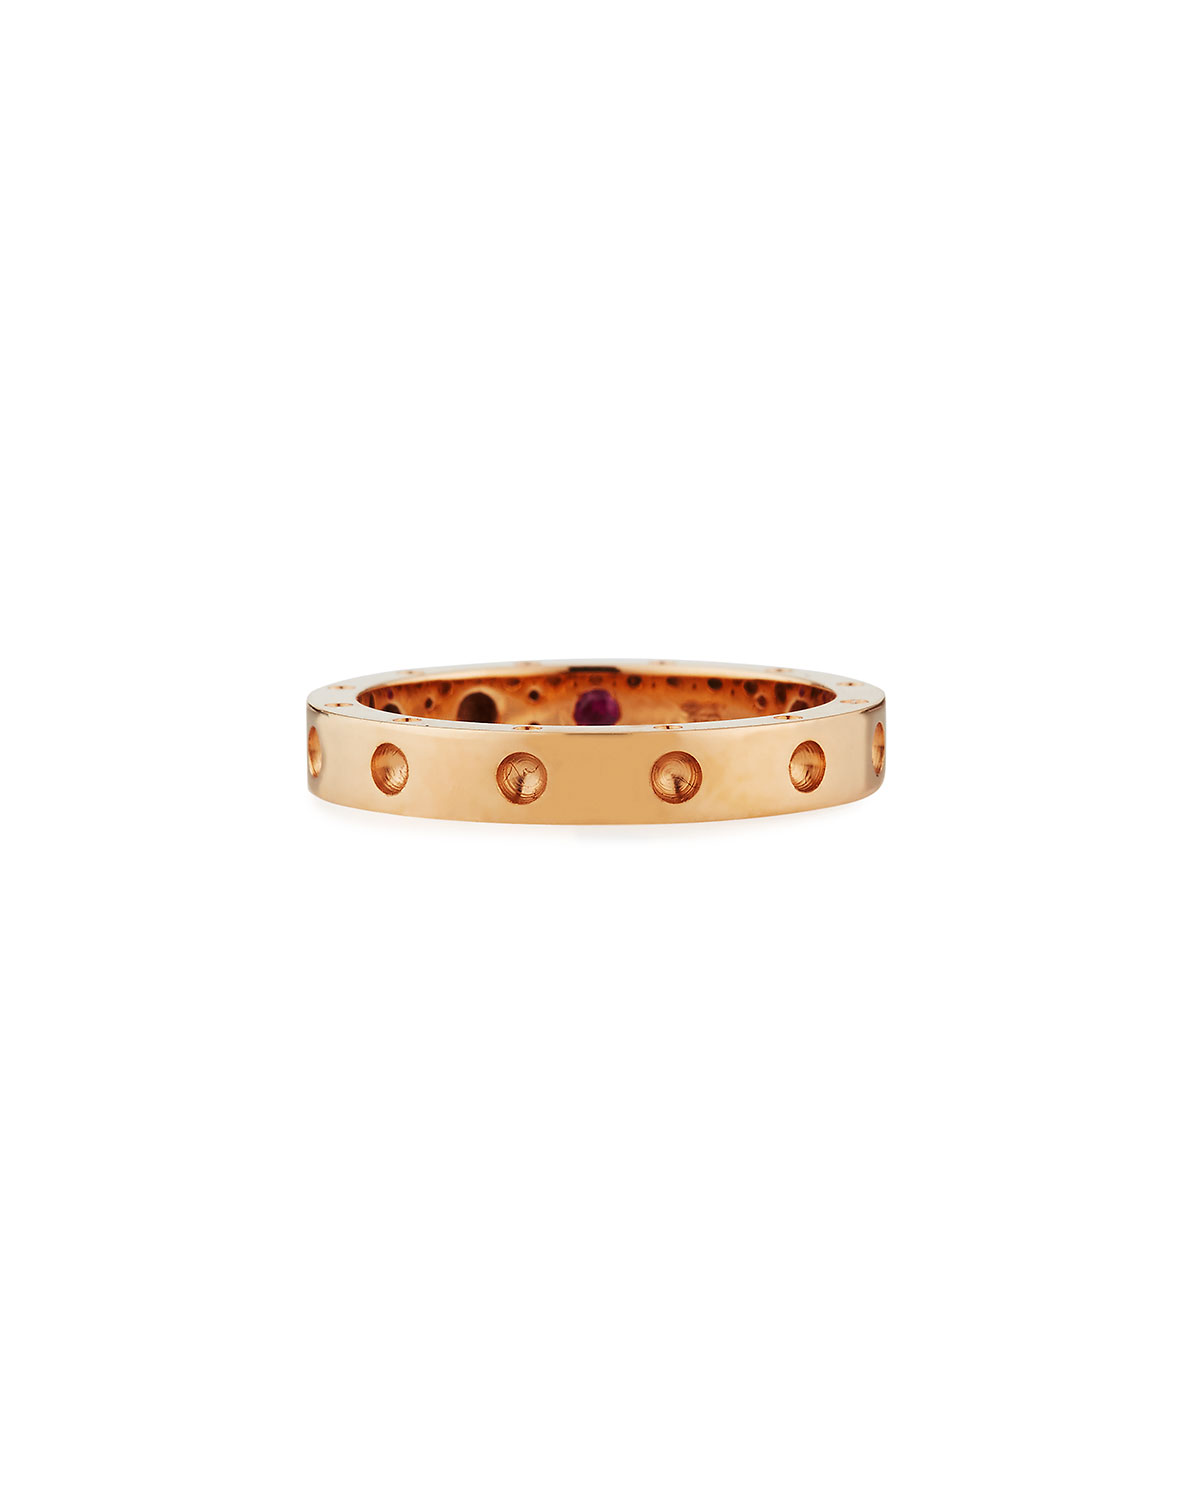 ROBERTO COIN SYMPHONY COLLECTION 18K GOLD POIS MOIS RING, SIZE 6.5